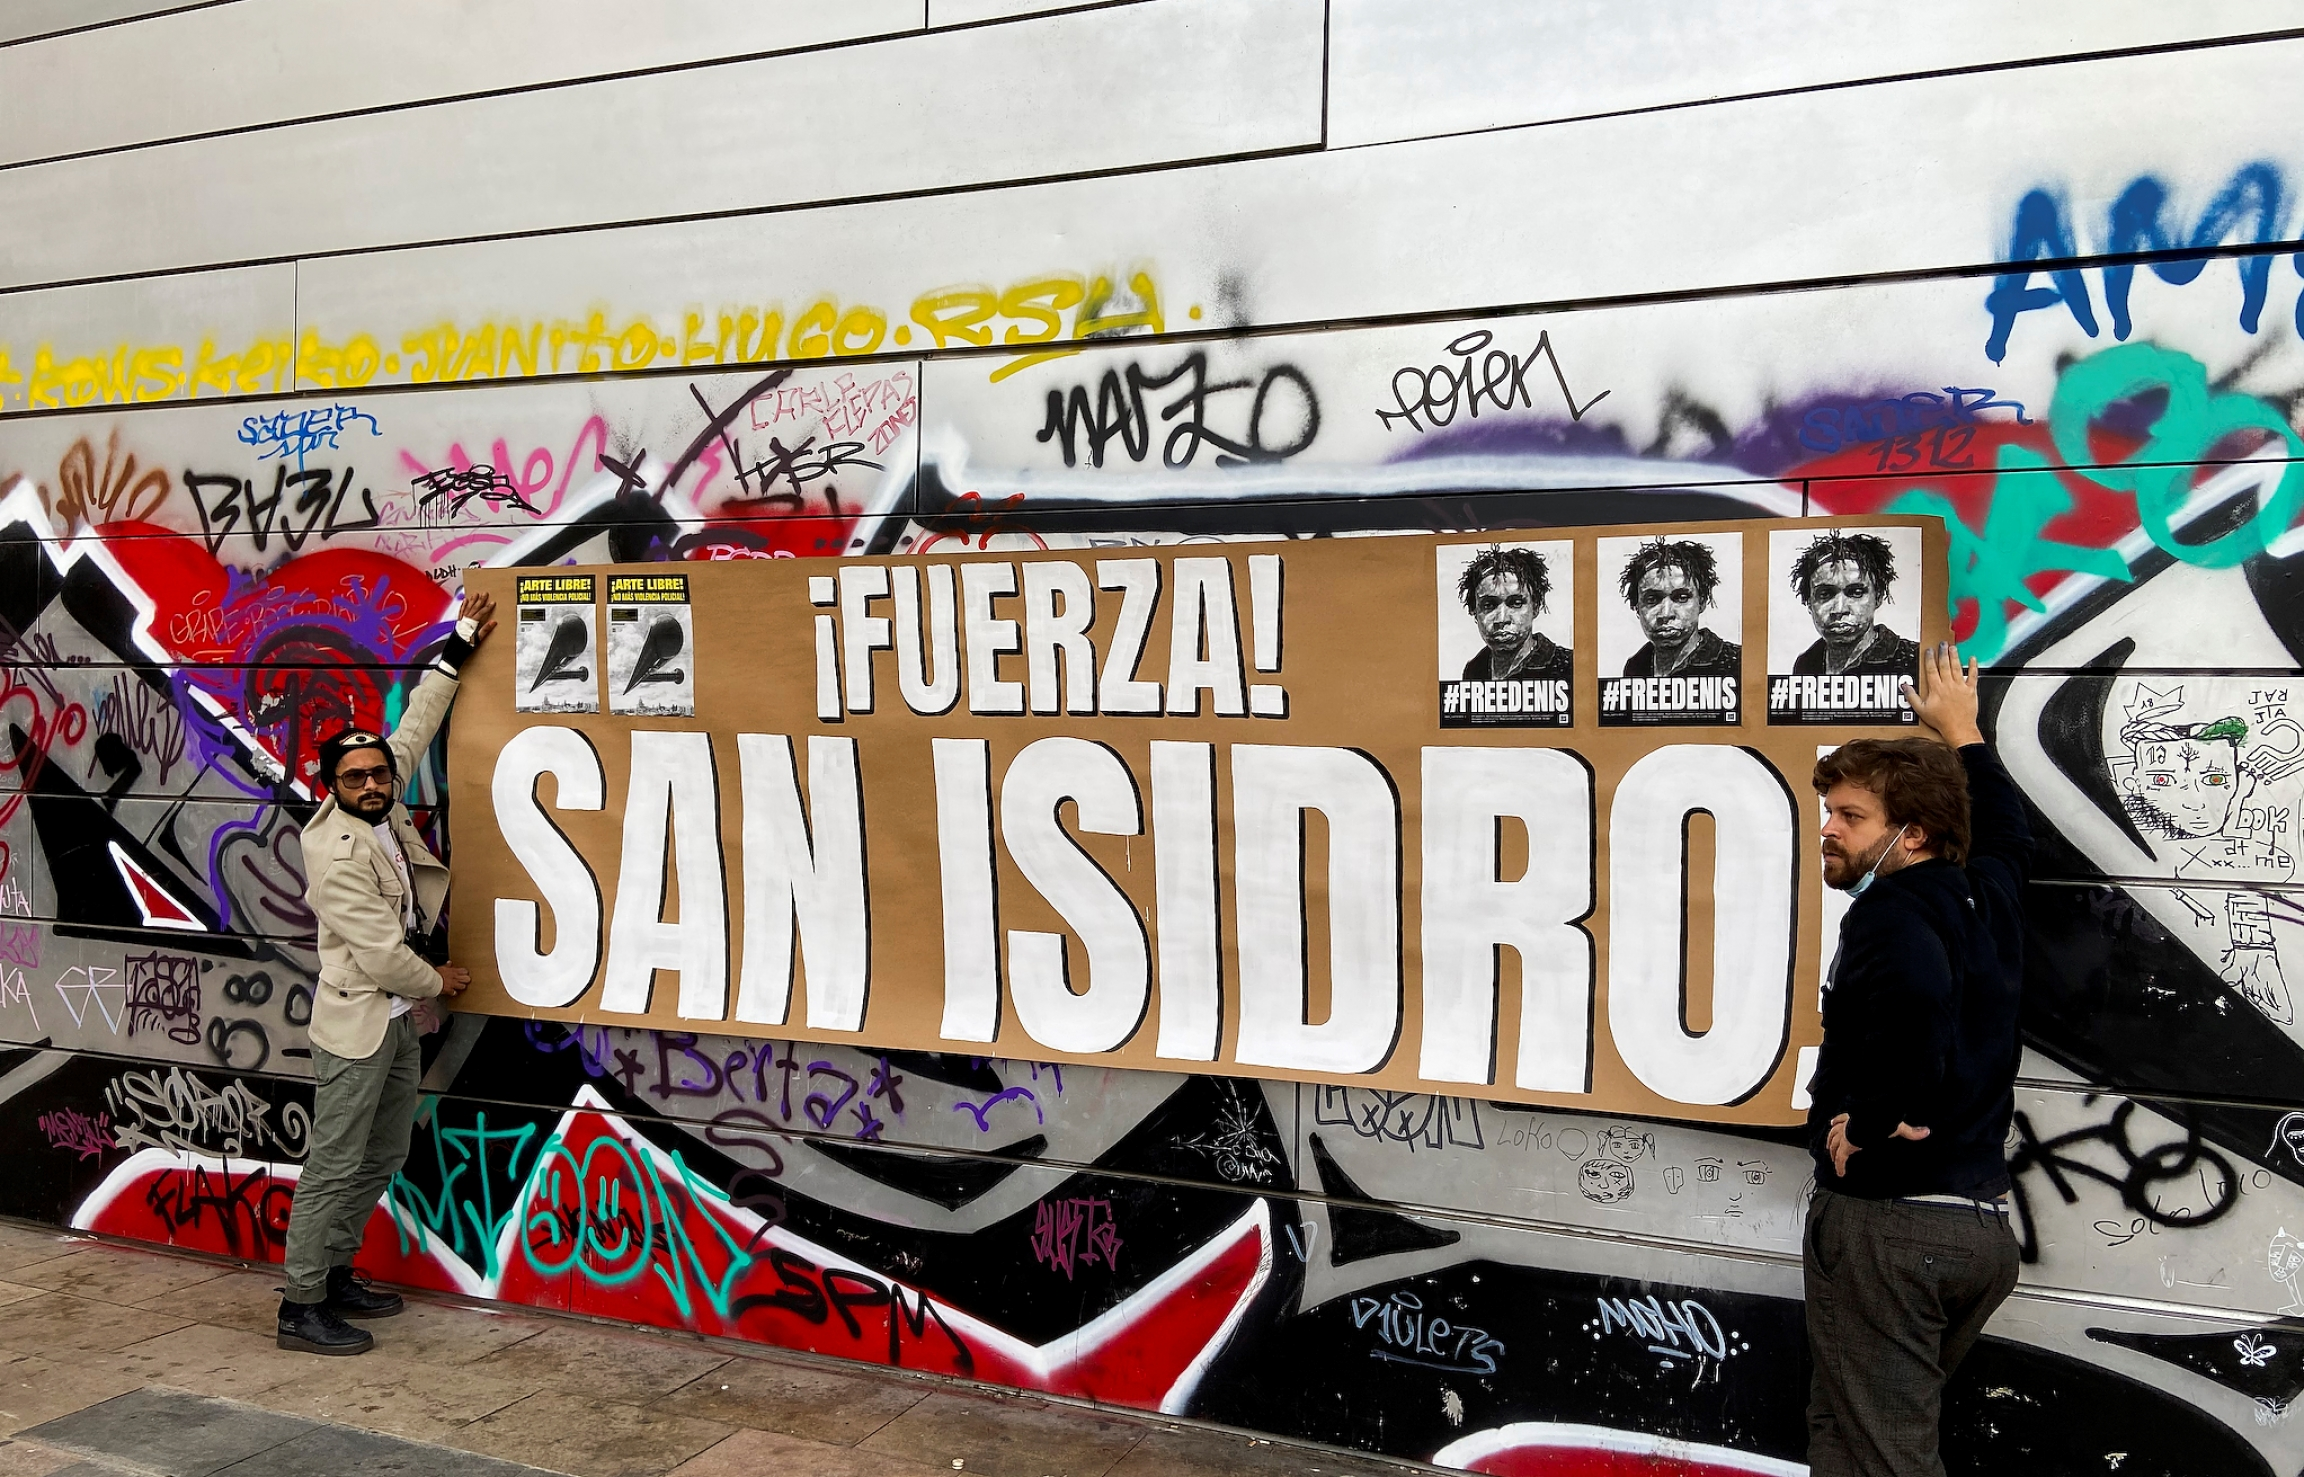 Cubans living in Spain show their support for the San Isidro Movement and the jailed rapper Denis Solís.